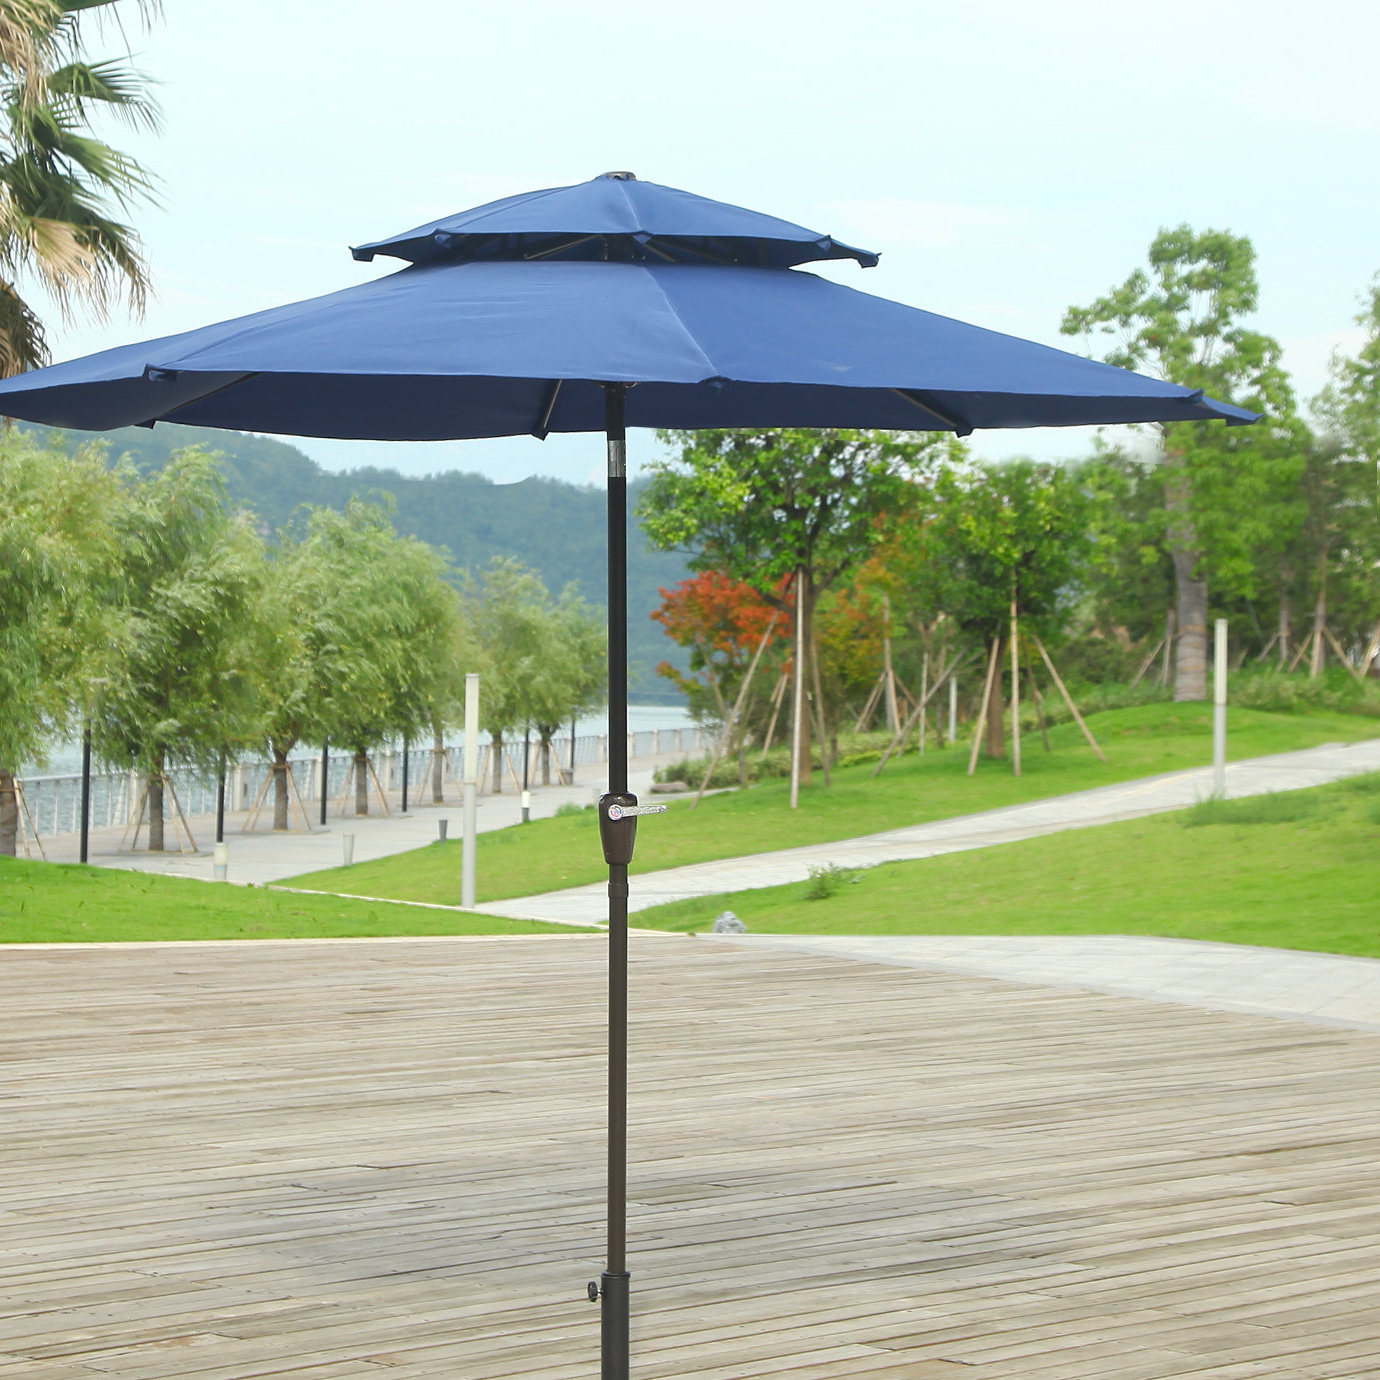 Pedrick Drape Market Umbrellas Regarding Fashionable Dimond 9' Market Umbrella (View 8 of 20)